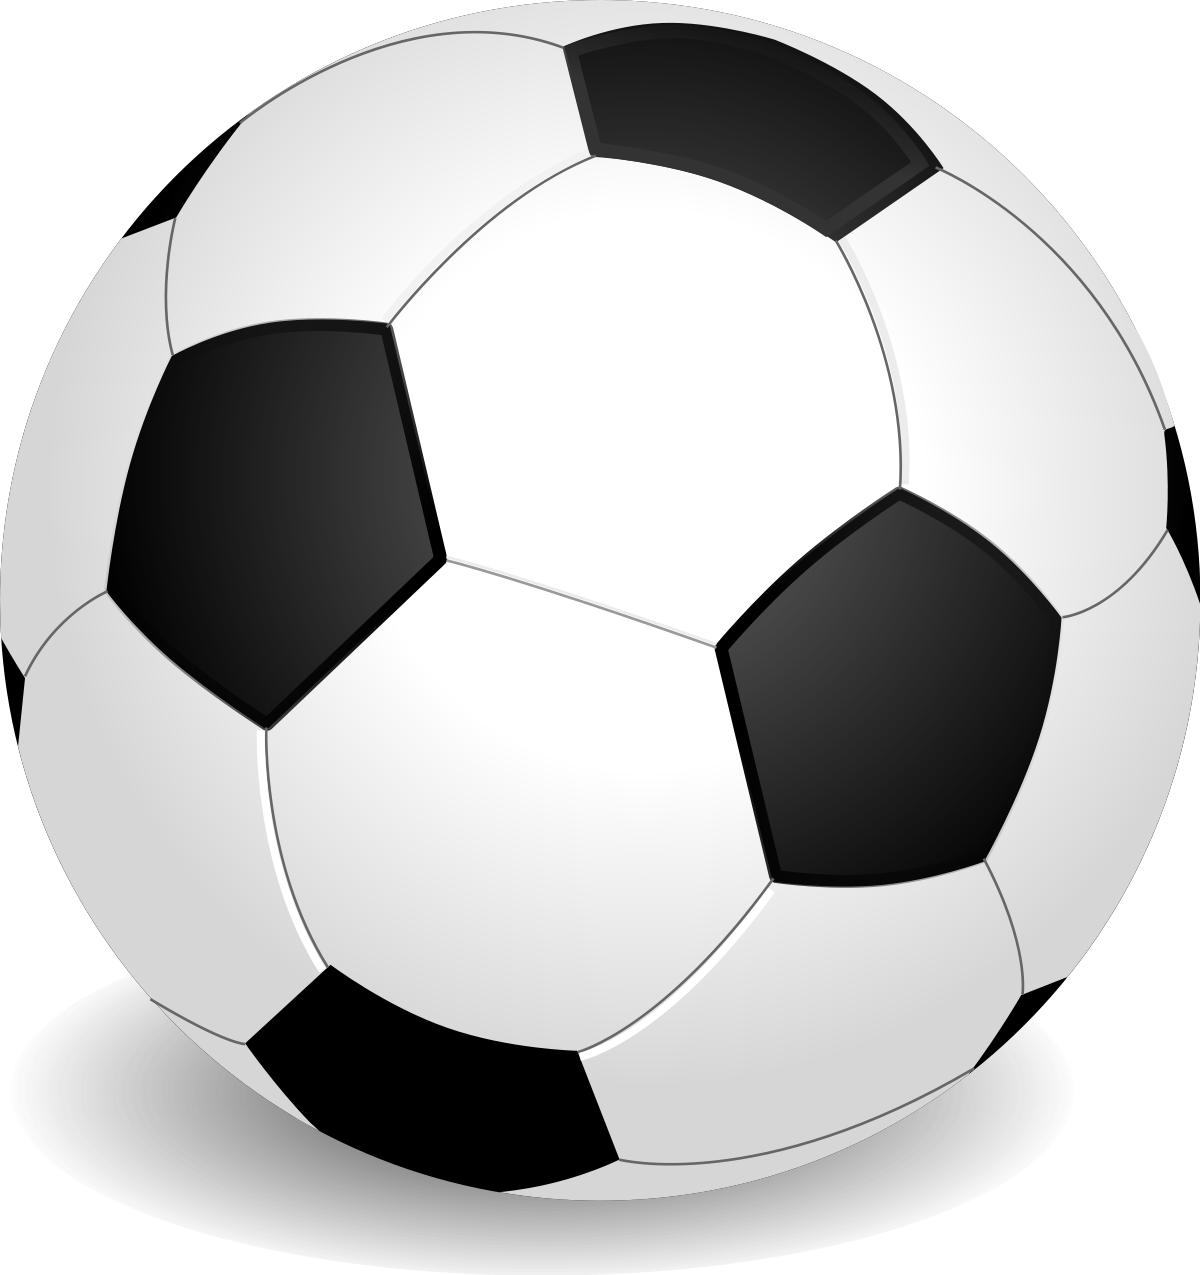 Real madrid agrees with. Clipart shield soccer